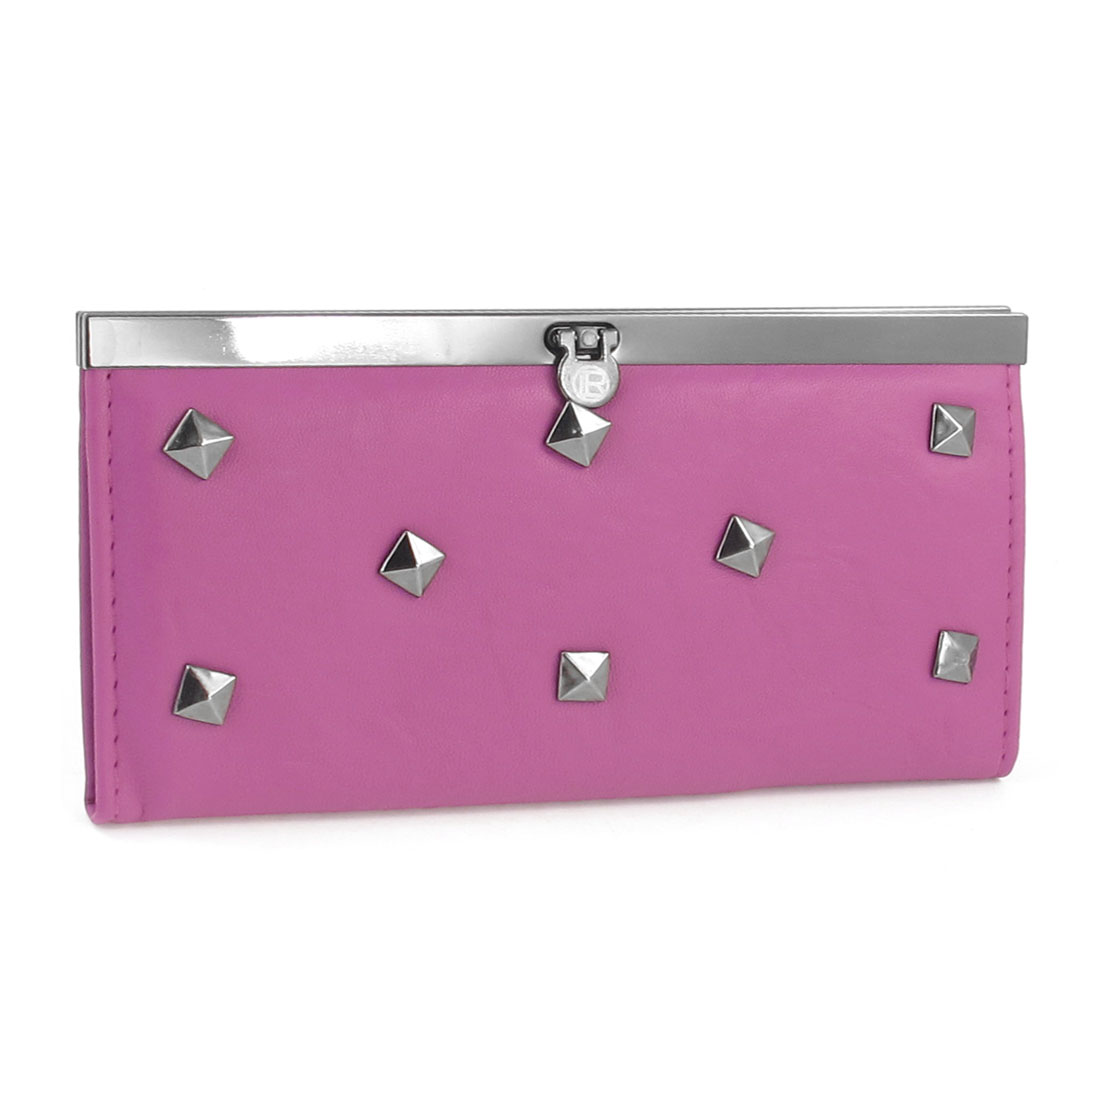 "7.5"" Length Stub Ornament Rectangle Fuchsia Faux Leather Purse for Lady"